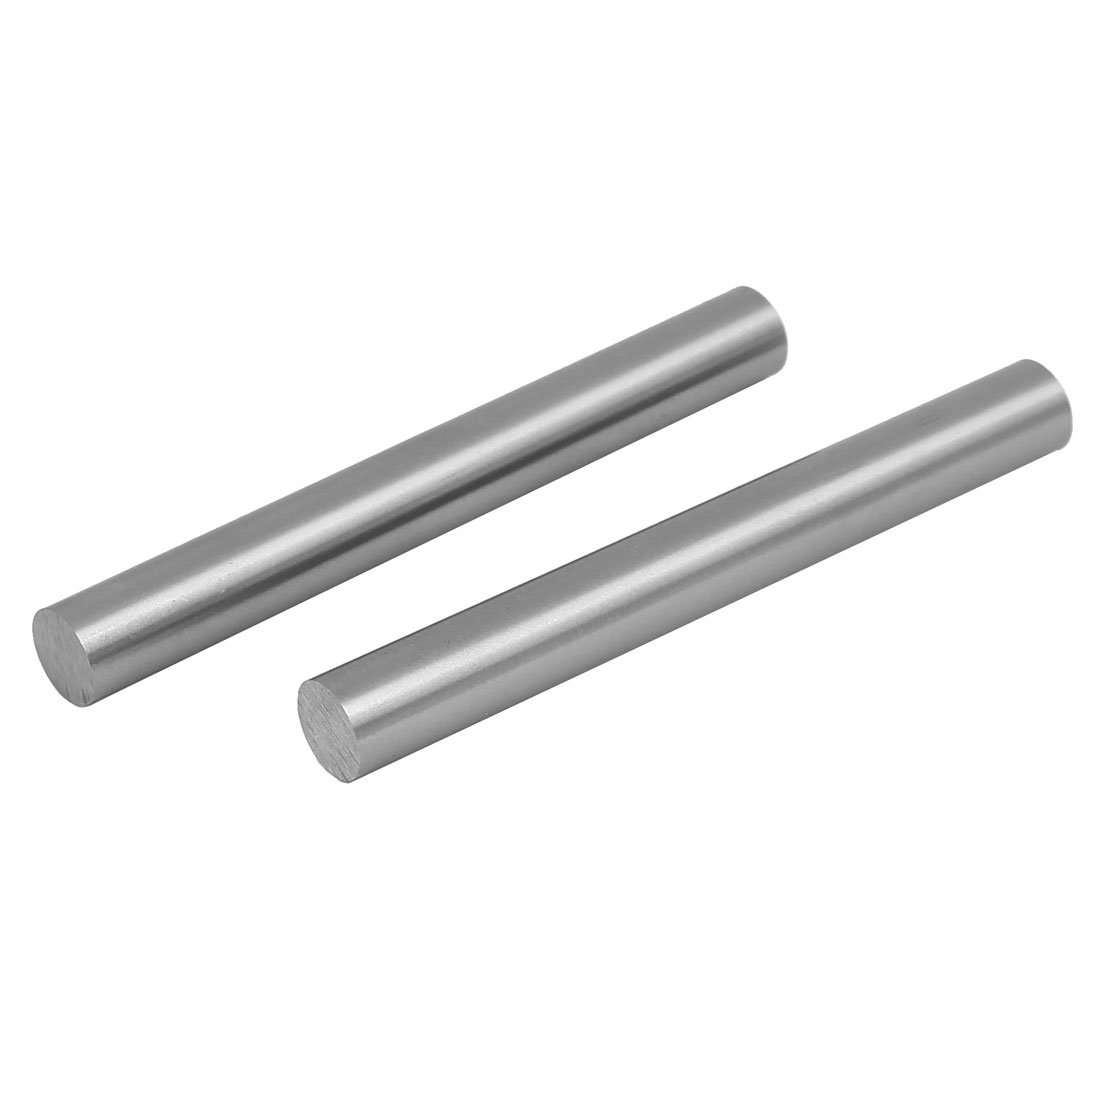 11.5mm Dia 100mm Length HSS Round Shaft Rod Bar Lathe Tools Gray 2pcs